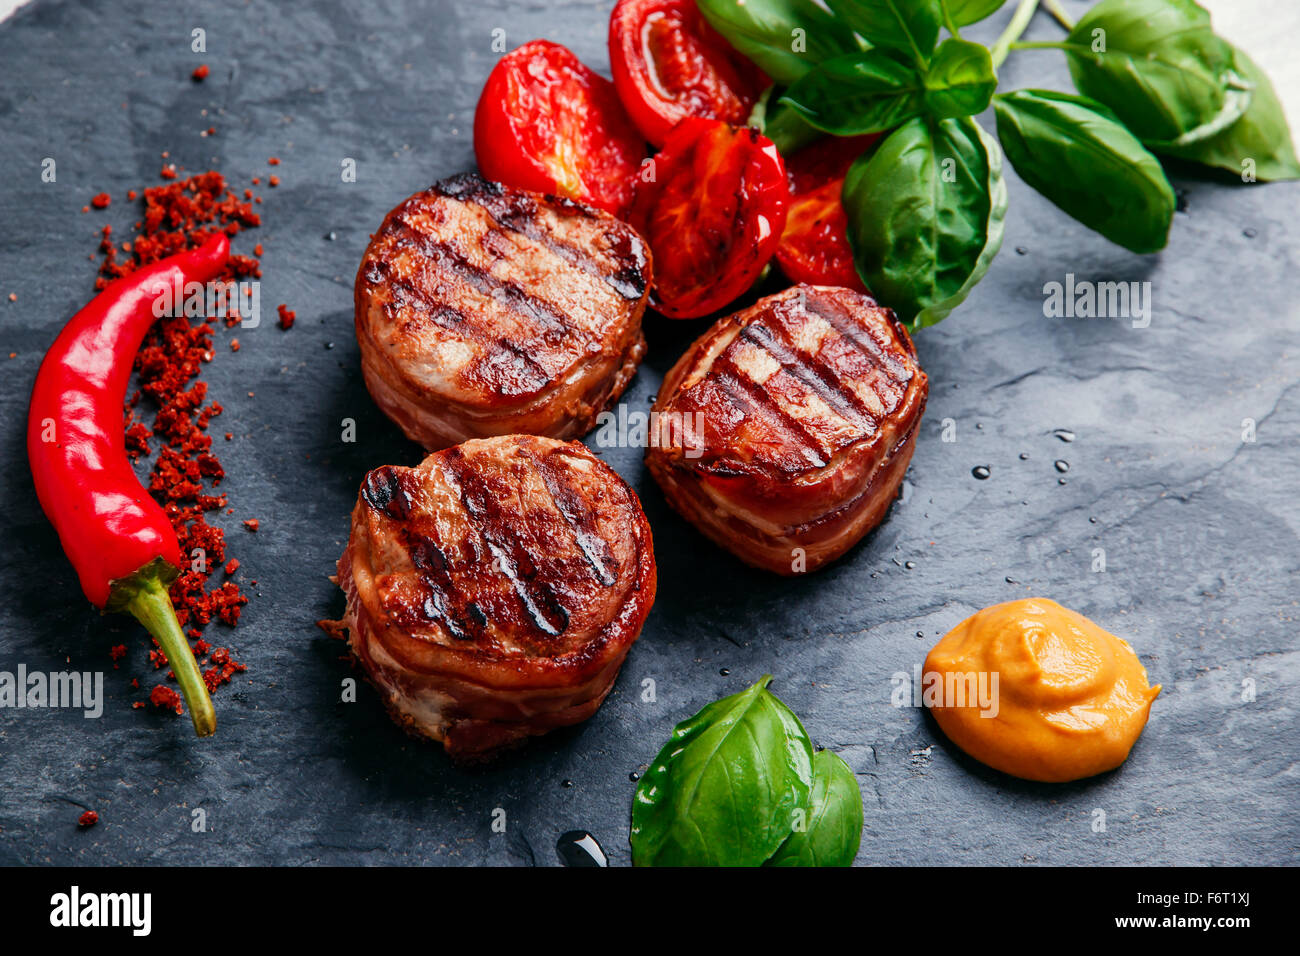 Grilled meat fillet steak wrapped in bacon medallions - Stock Image